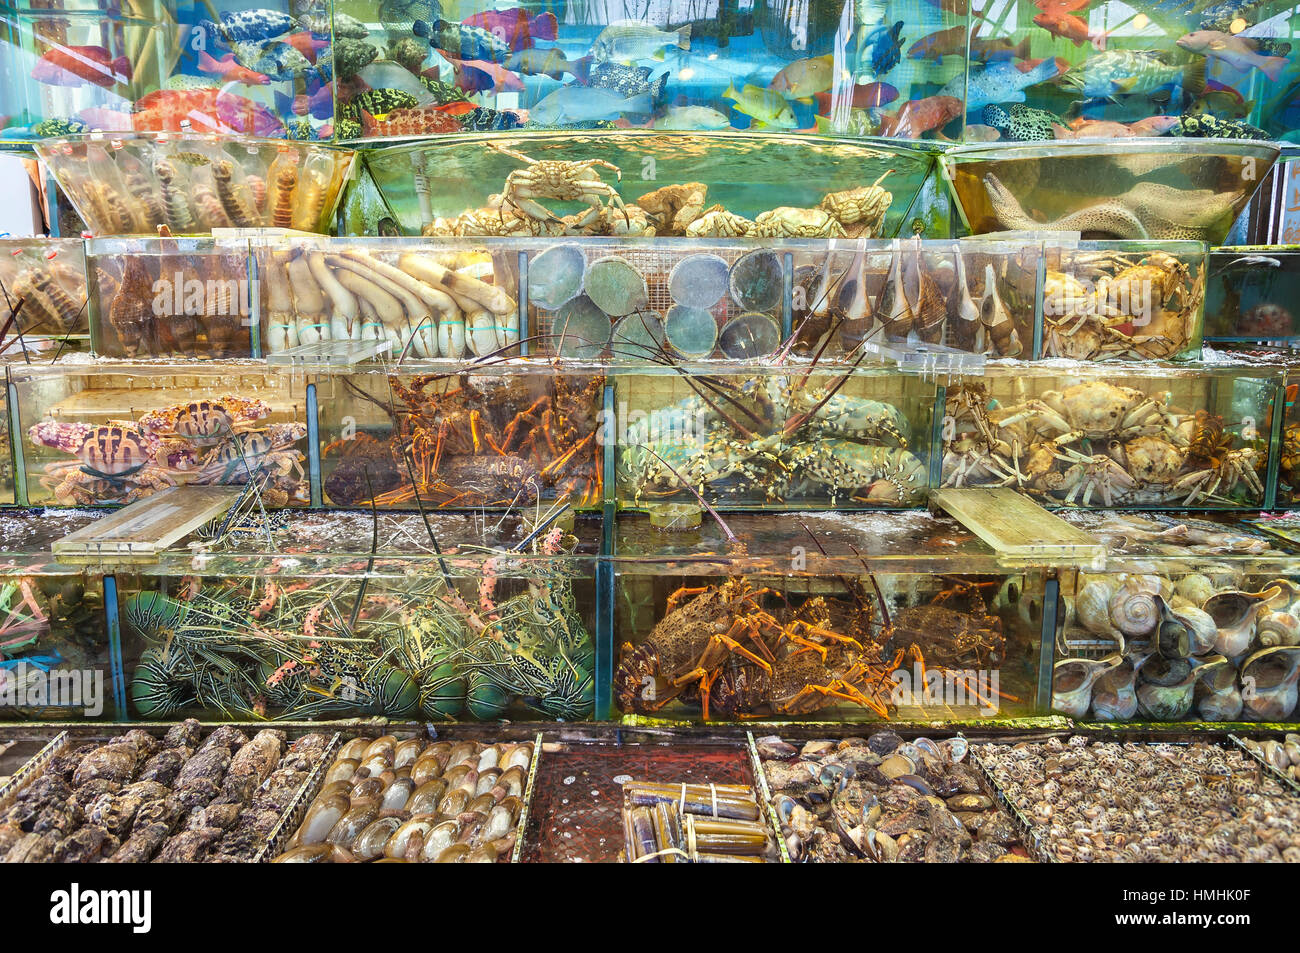 Live seafood outside a restaurant in sai kung hong kong for Fish market restaurant nyc